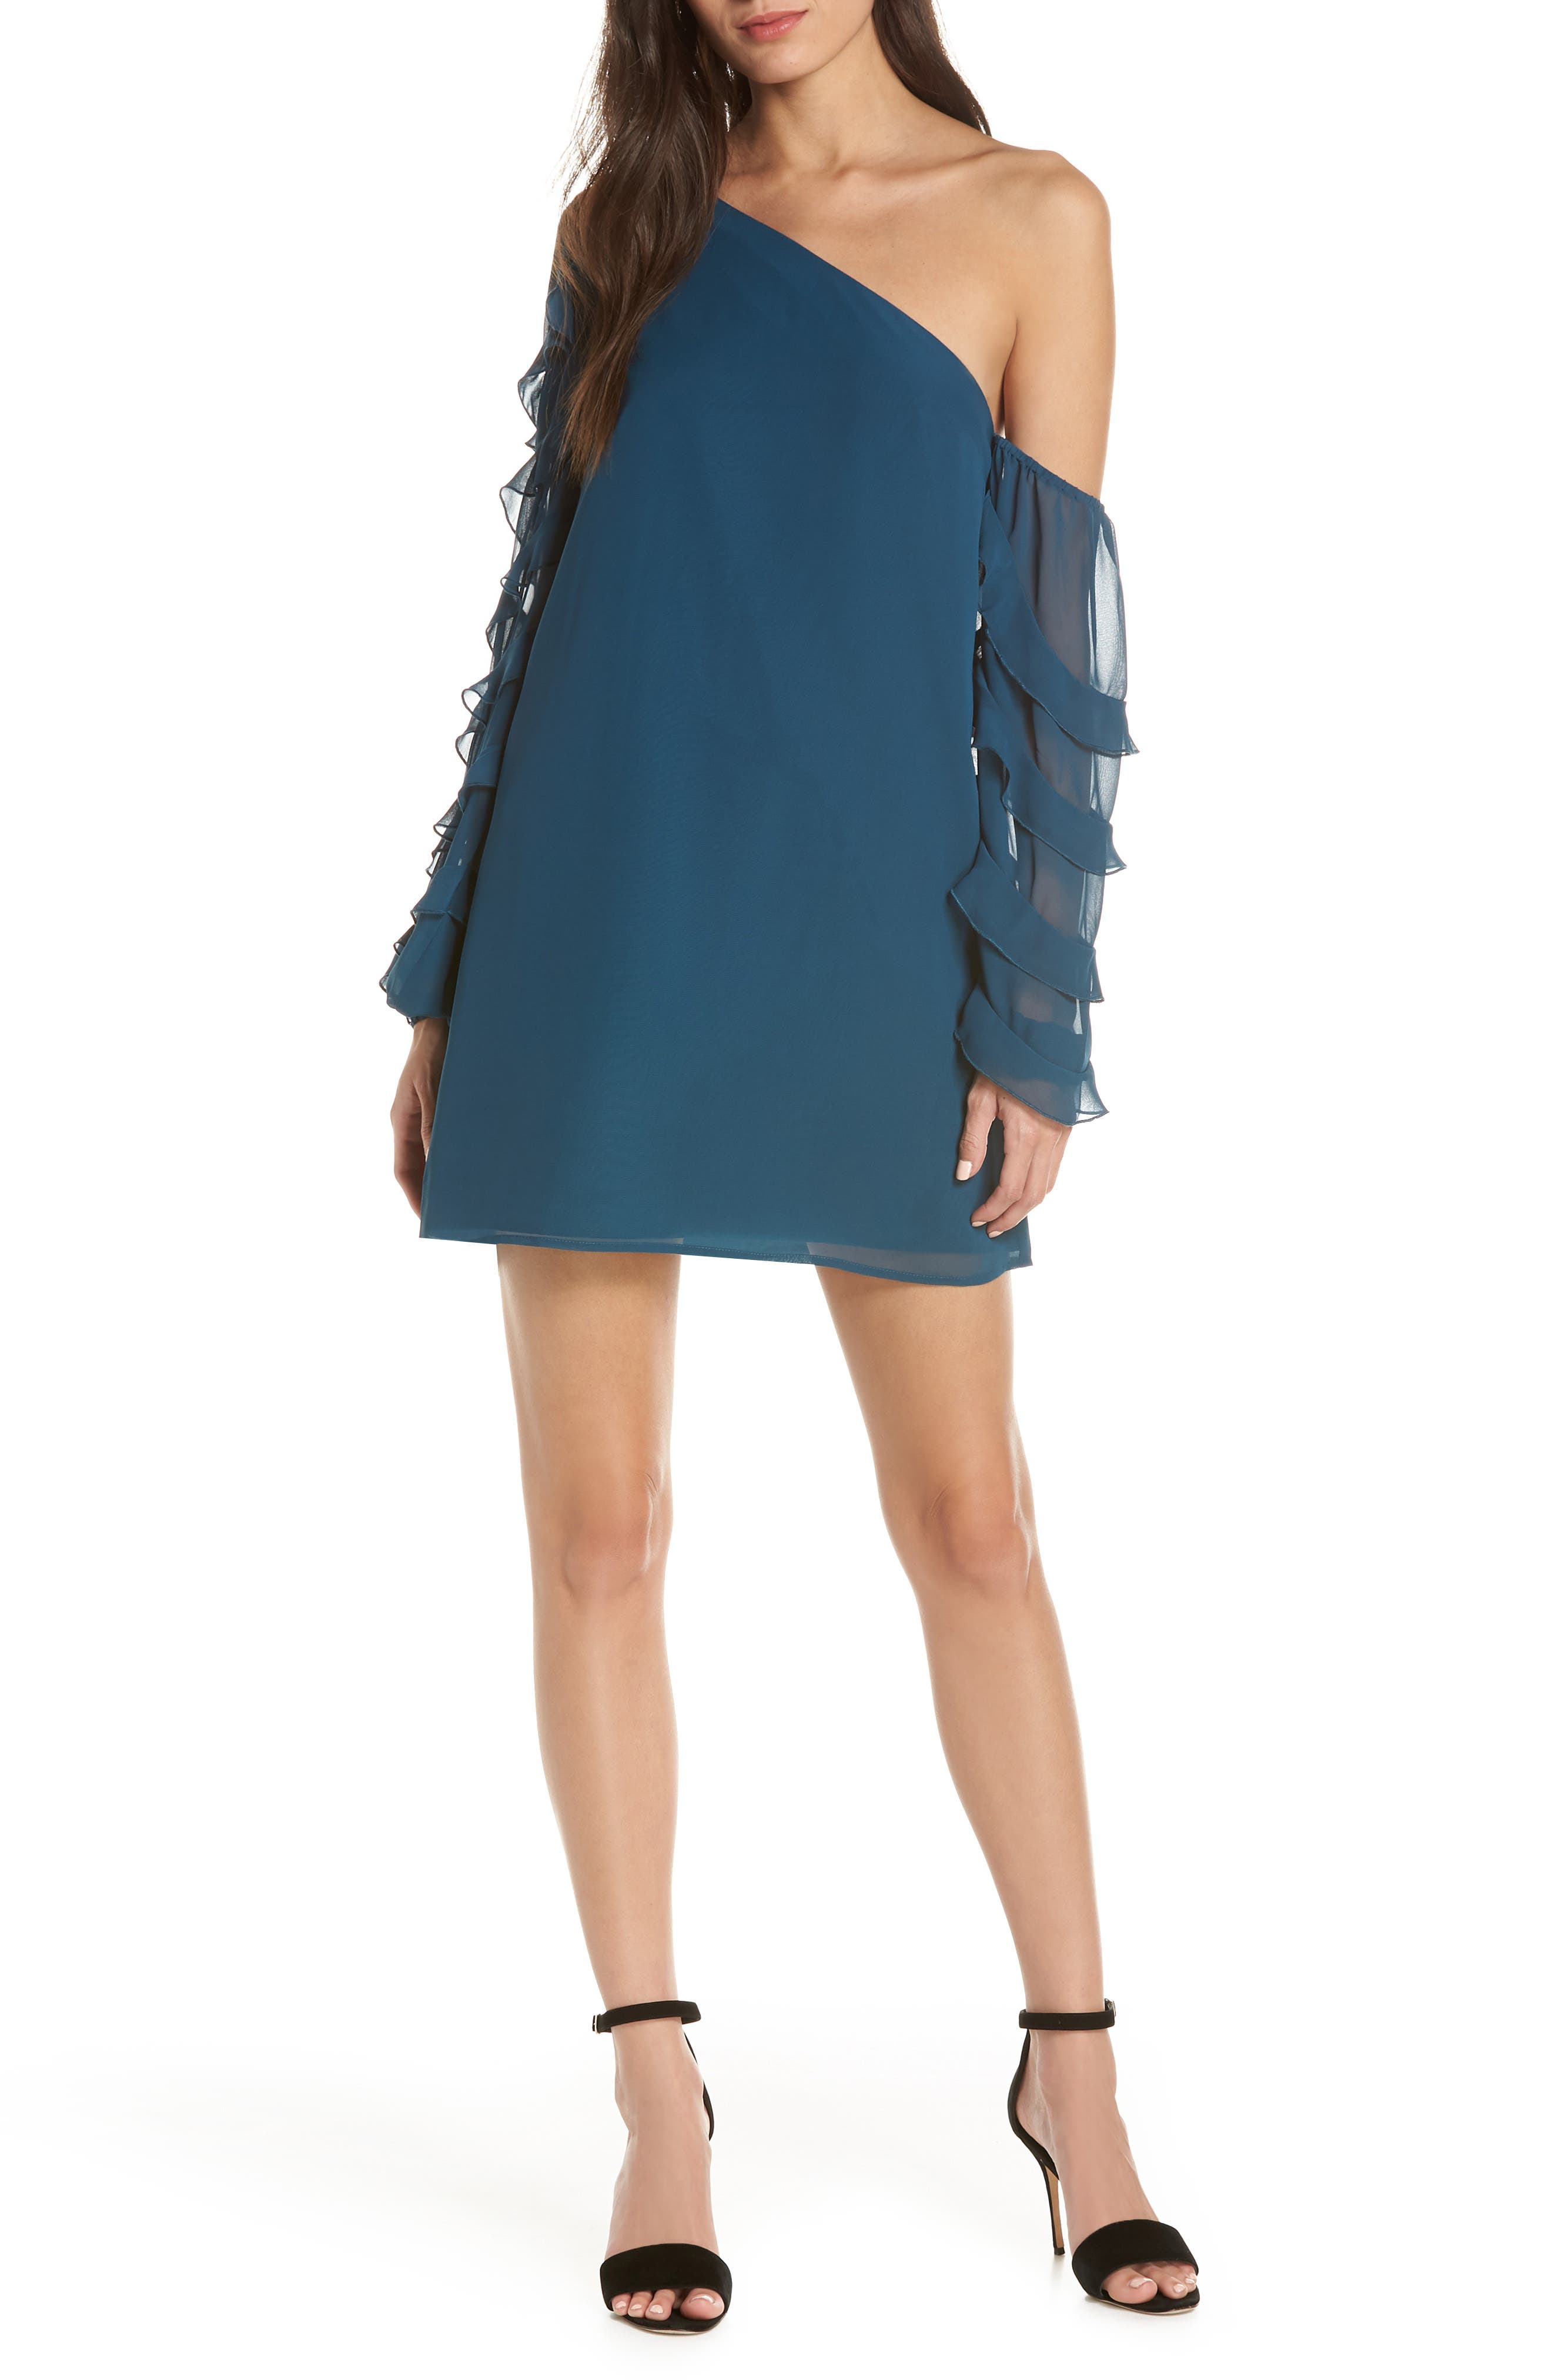 Love the Way I Look Tonight One-Shoulder Minidress, Main, color, TEAL